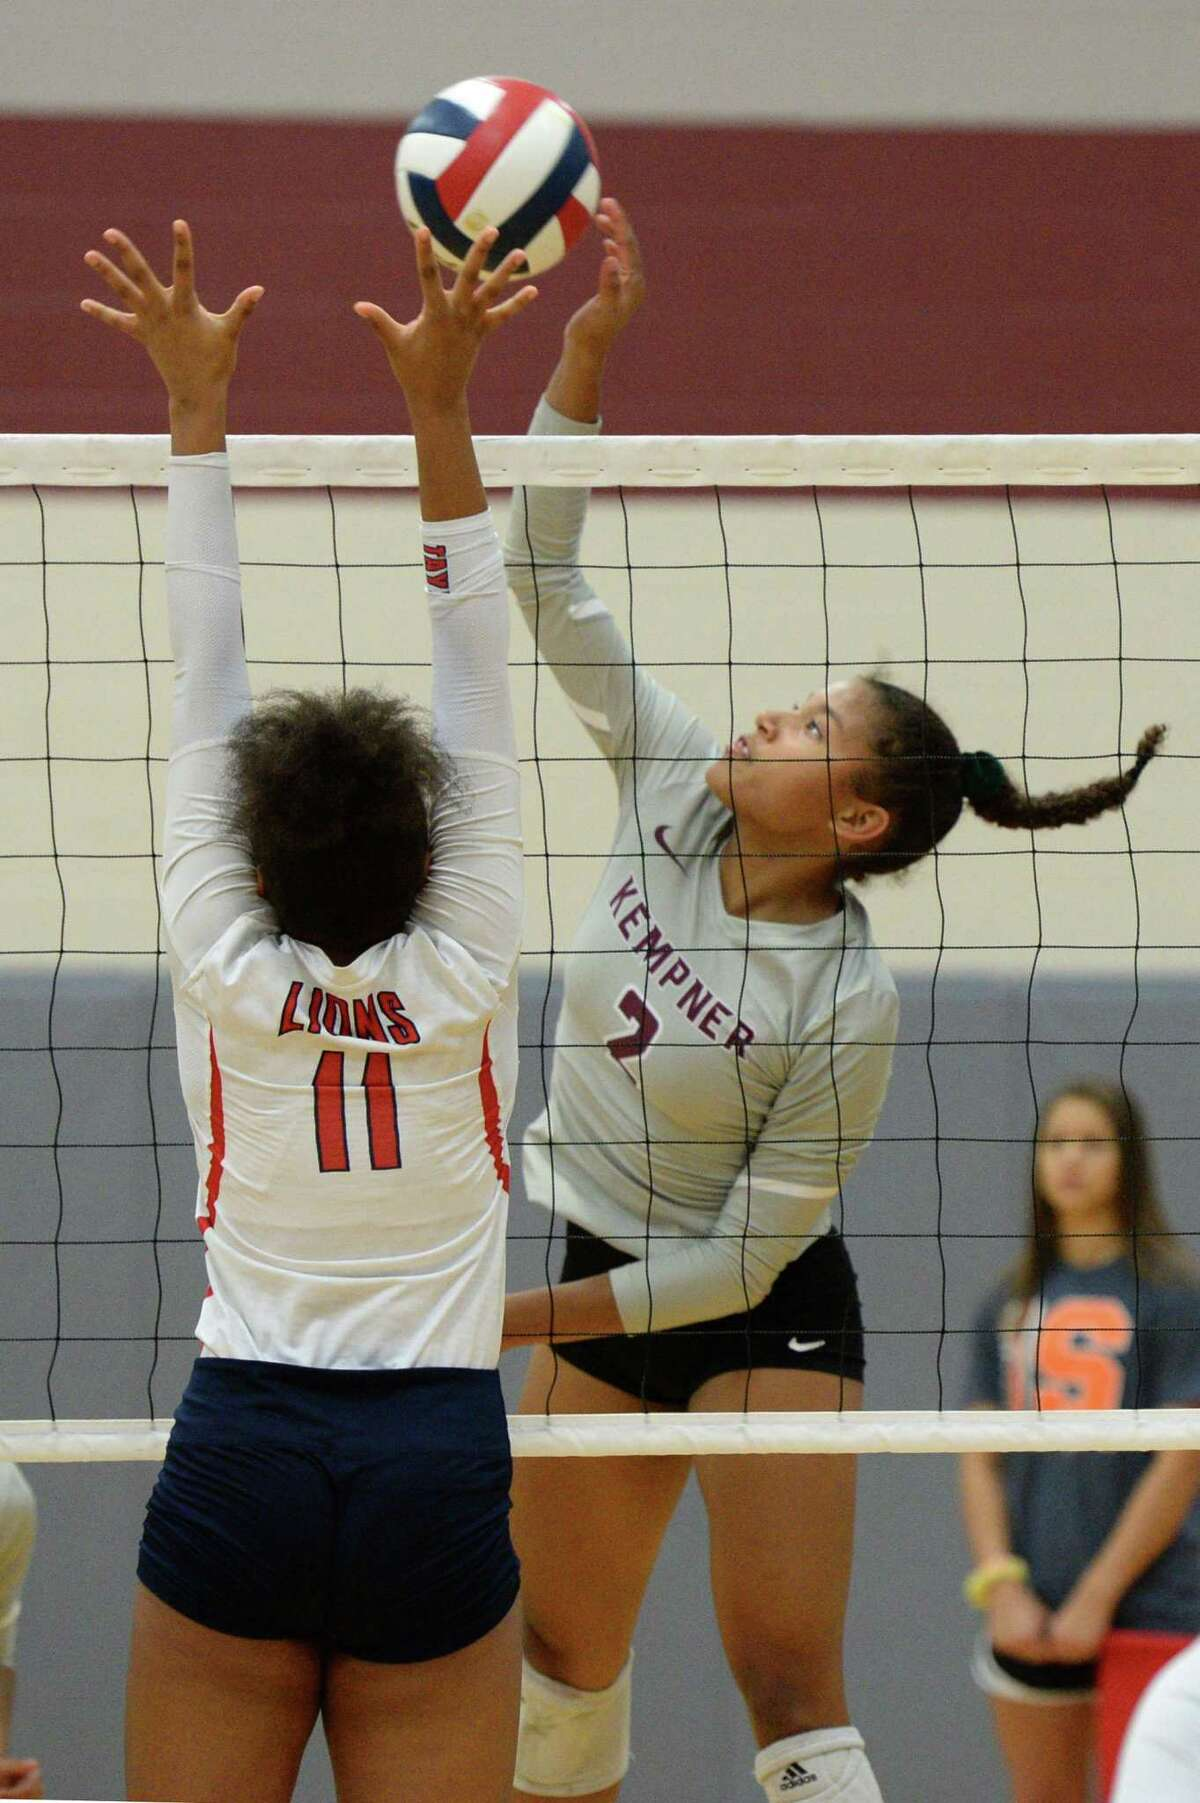 Tatiana Evans (2) of Kempner attempts a kill shot during the second set of a volleyball match between the Kempner Cougars and the Alief Taylor Lions on Saturday, August 10, 2019 at Cinco Ranch HS, Katy, TX.